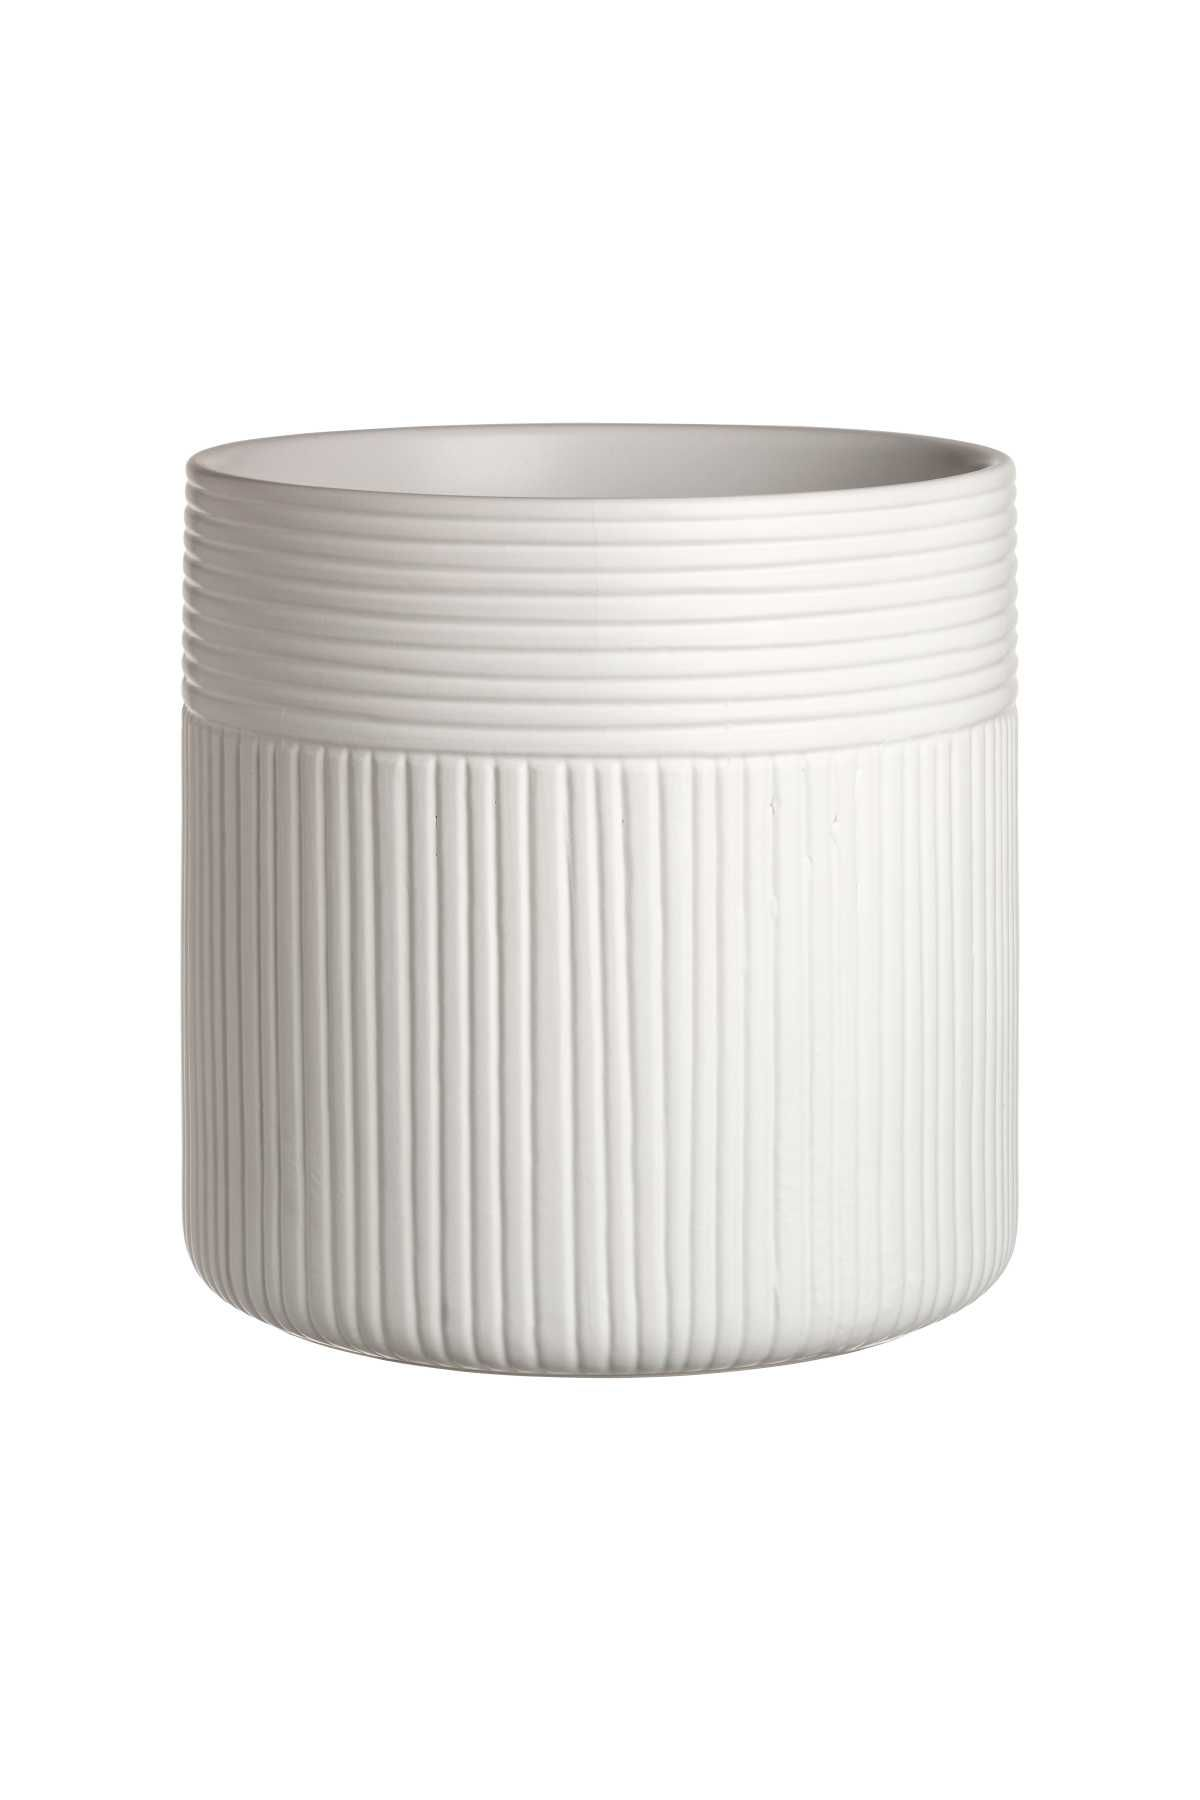 Natural White Large Textured Ceramic Plant Pot Diameter 6 1 2 In Height 6 3 4 In Ceramic Plant Pots Potted Plants Ceramic Texture